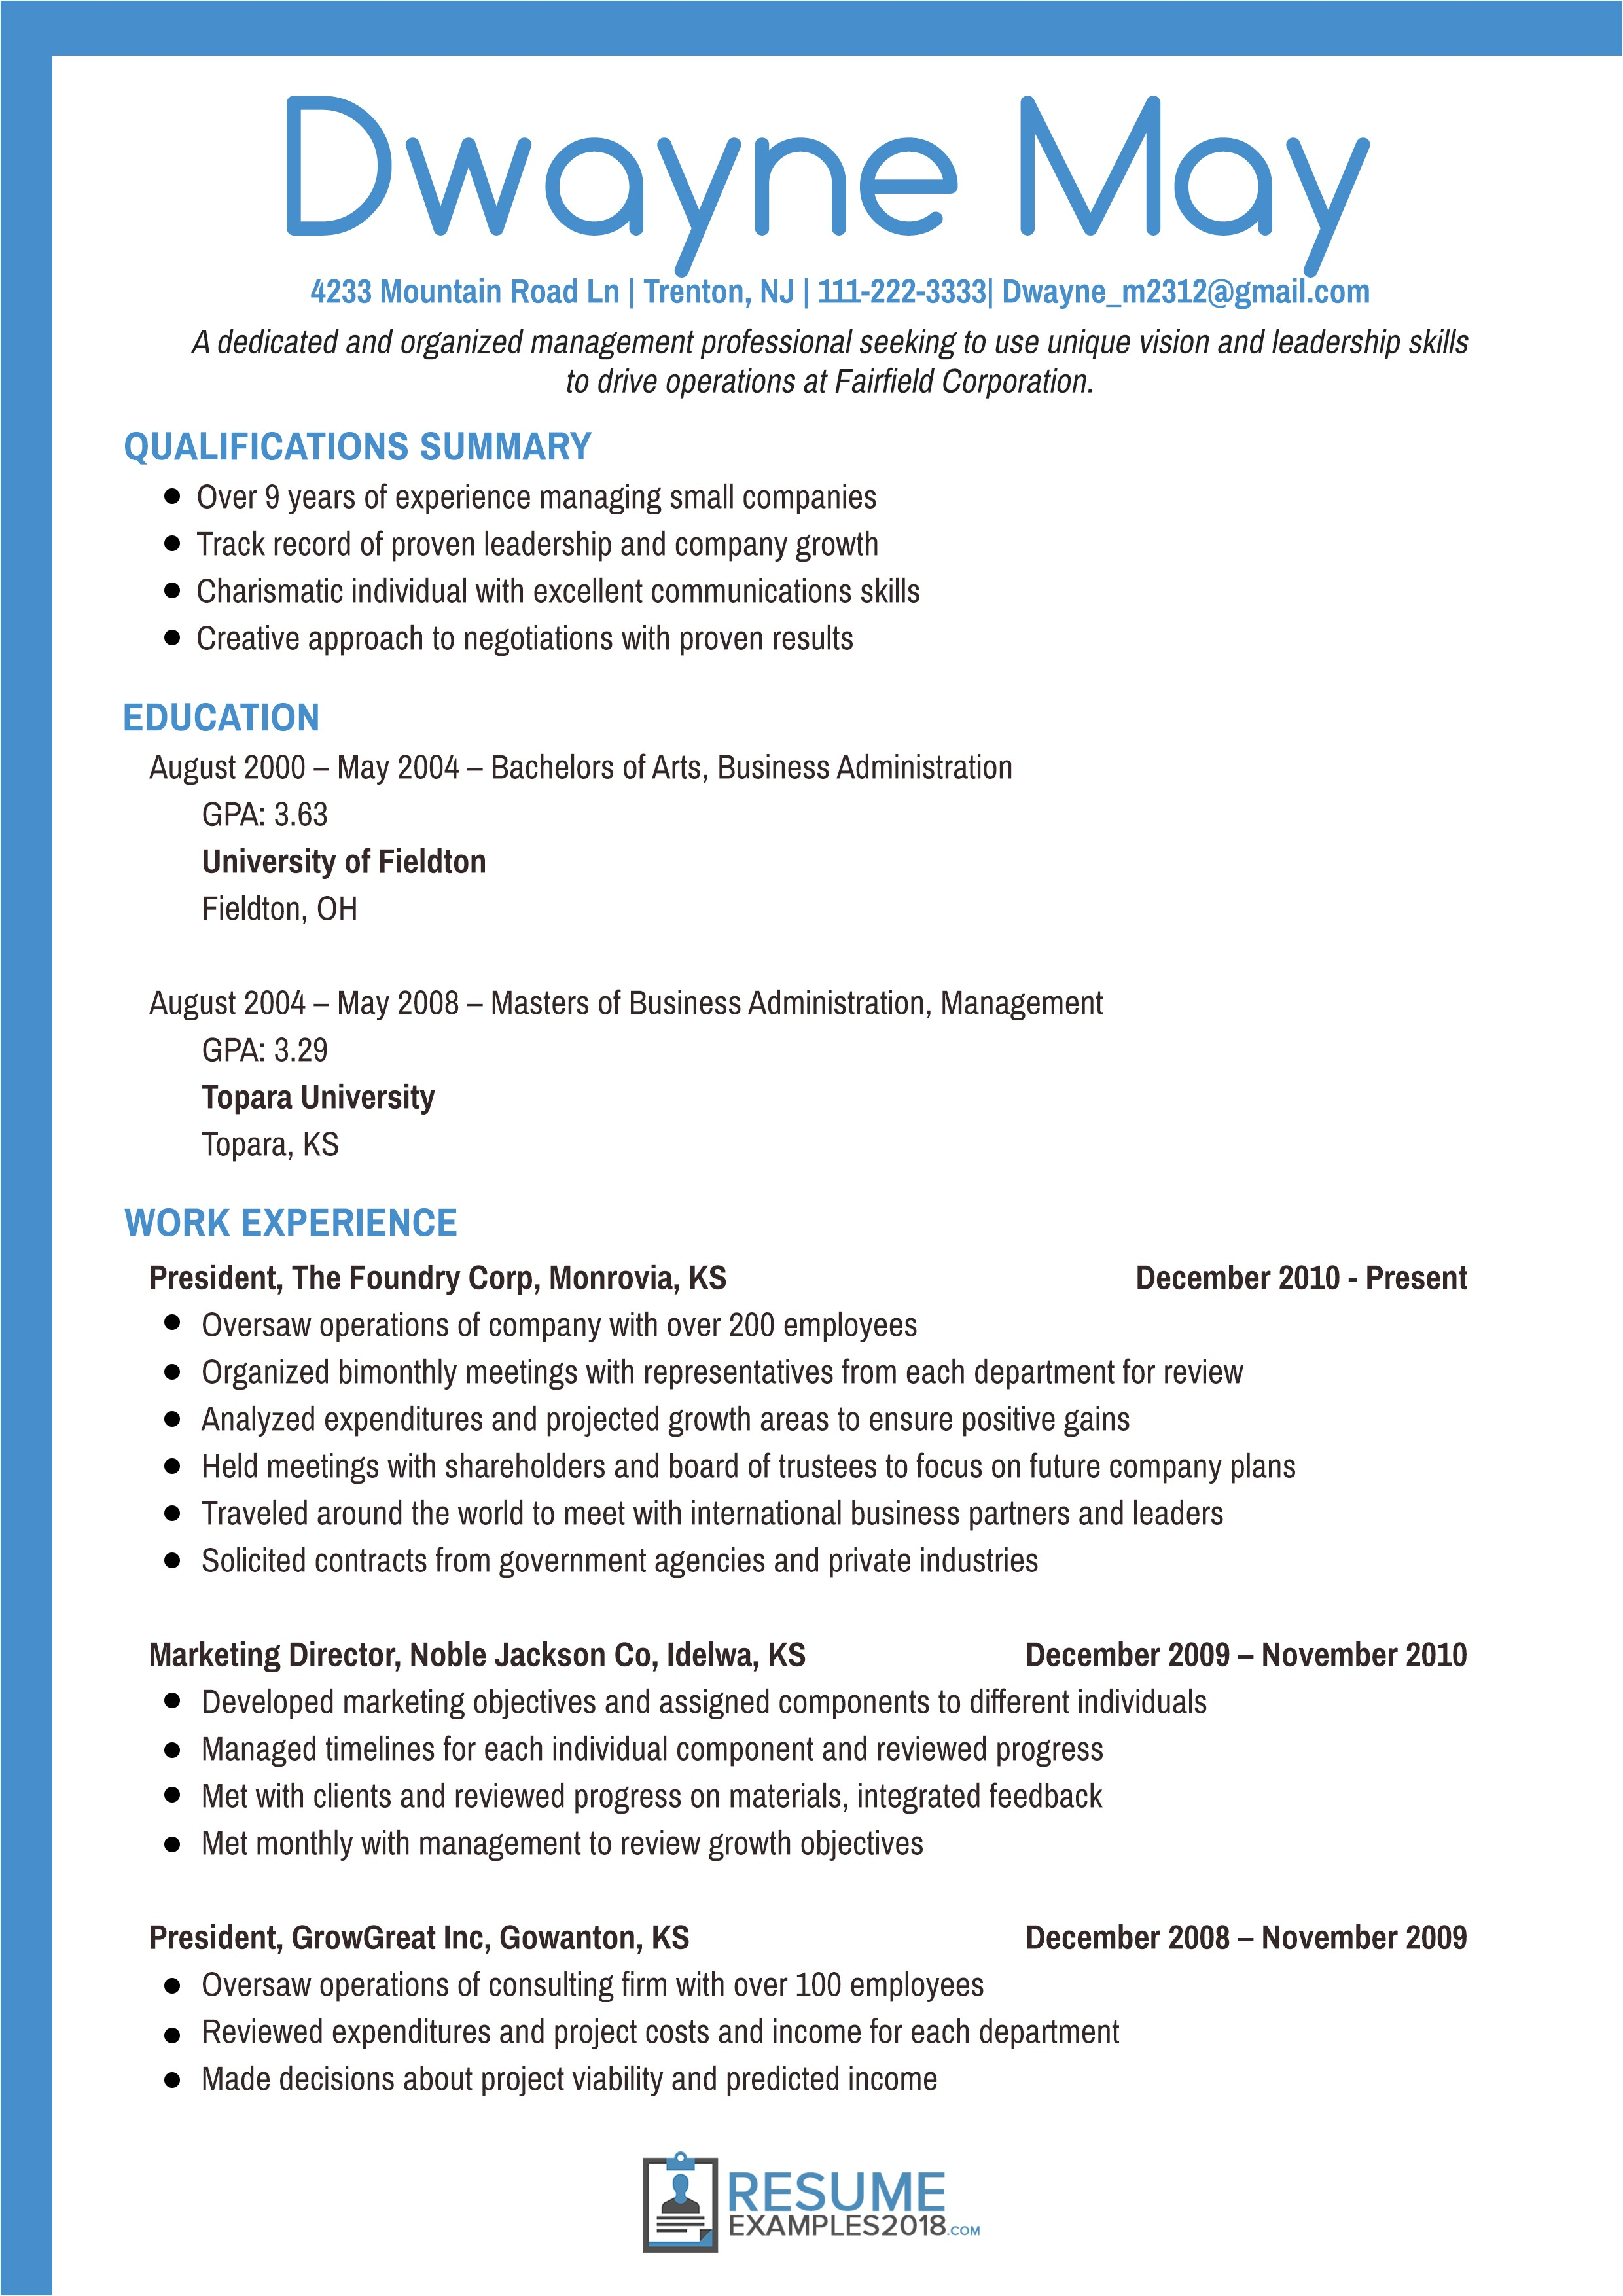 executive resume examples 2018